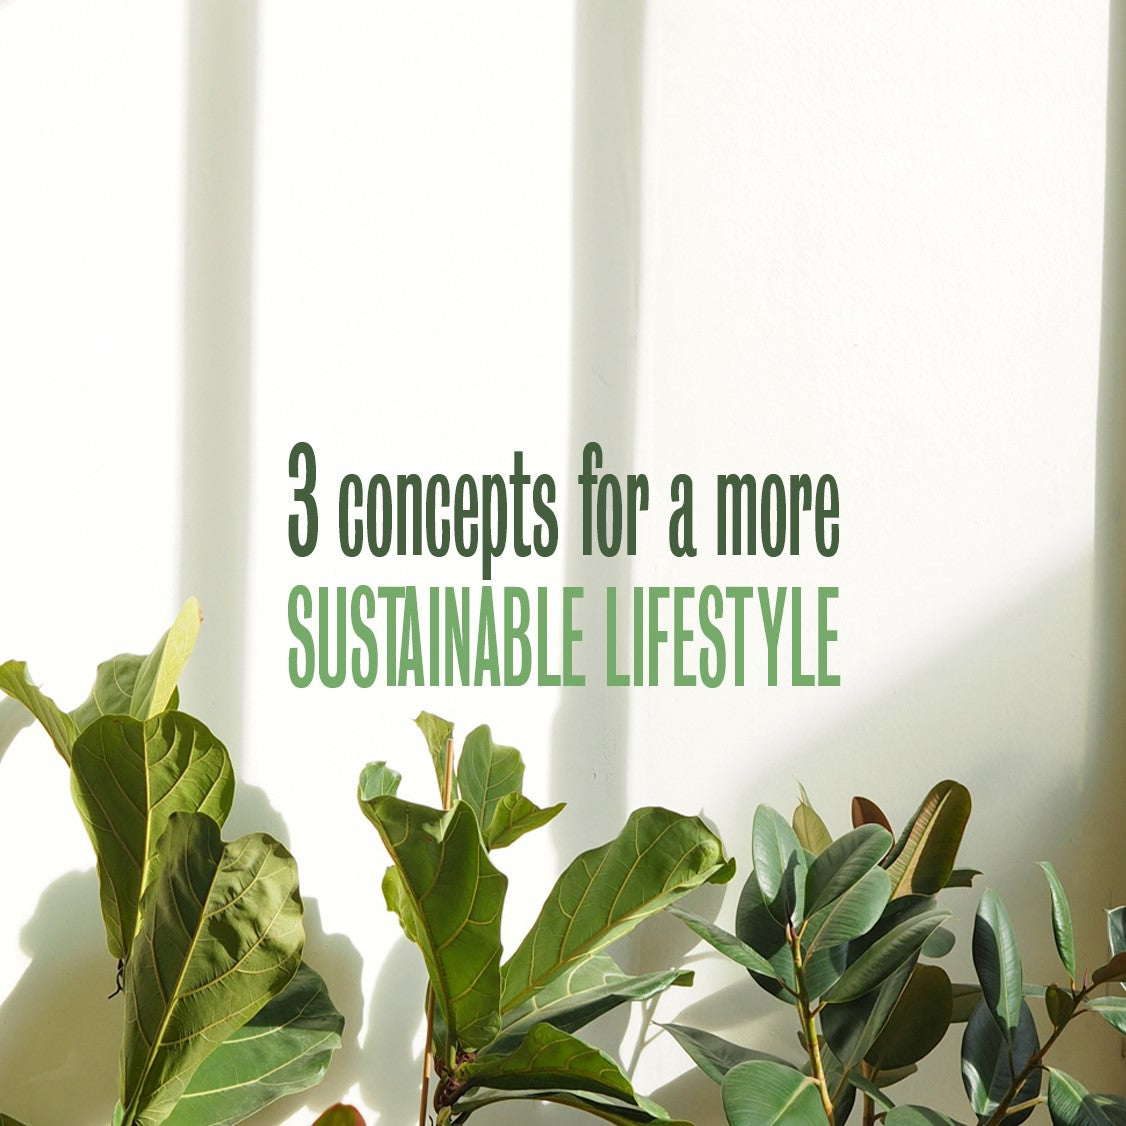 3 Concepts for a more sustainable lifestyle